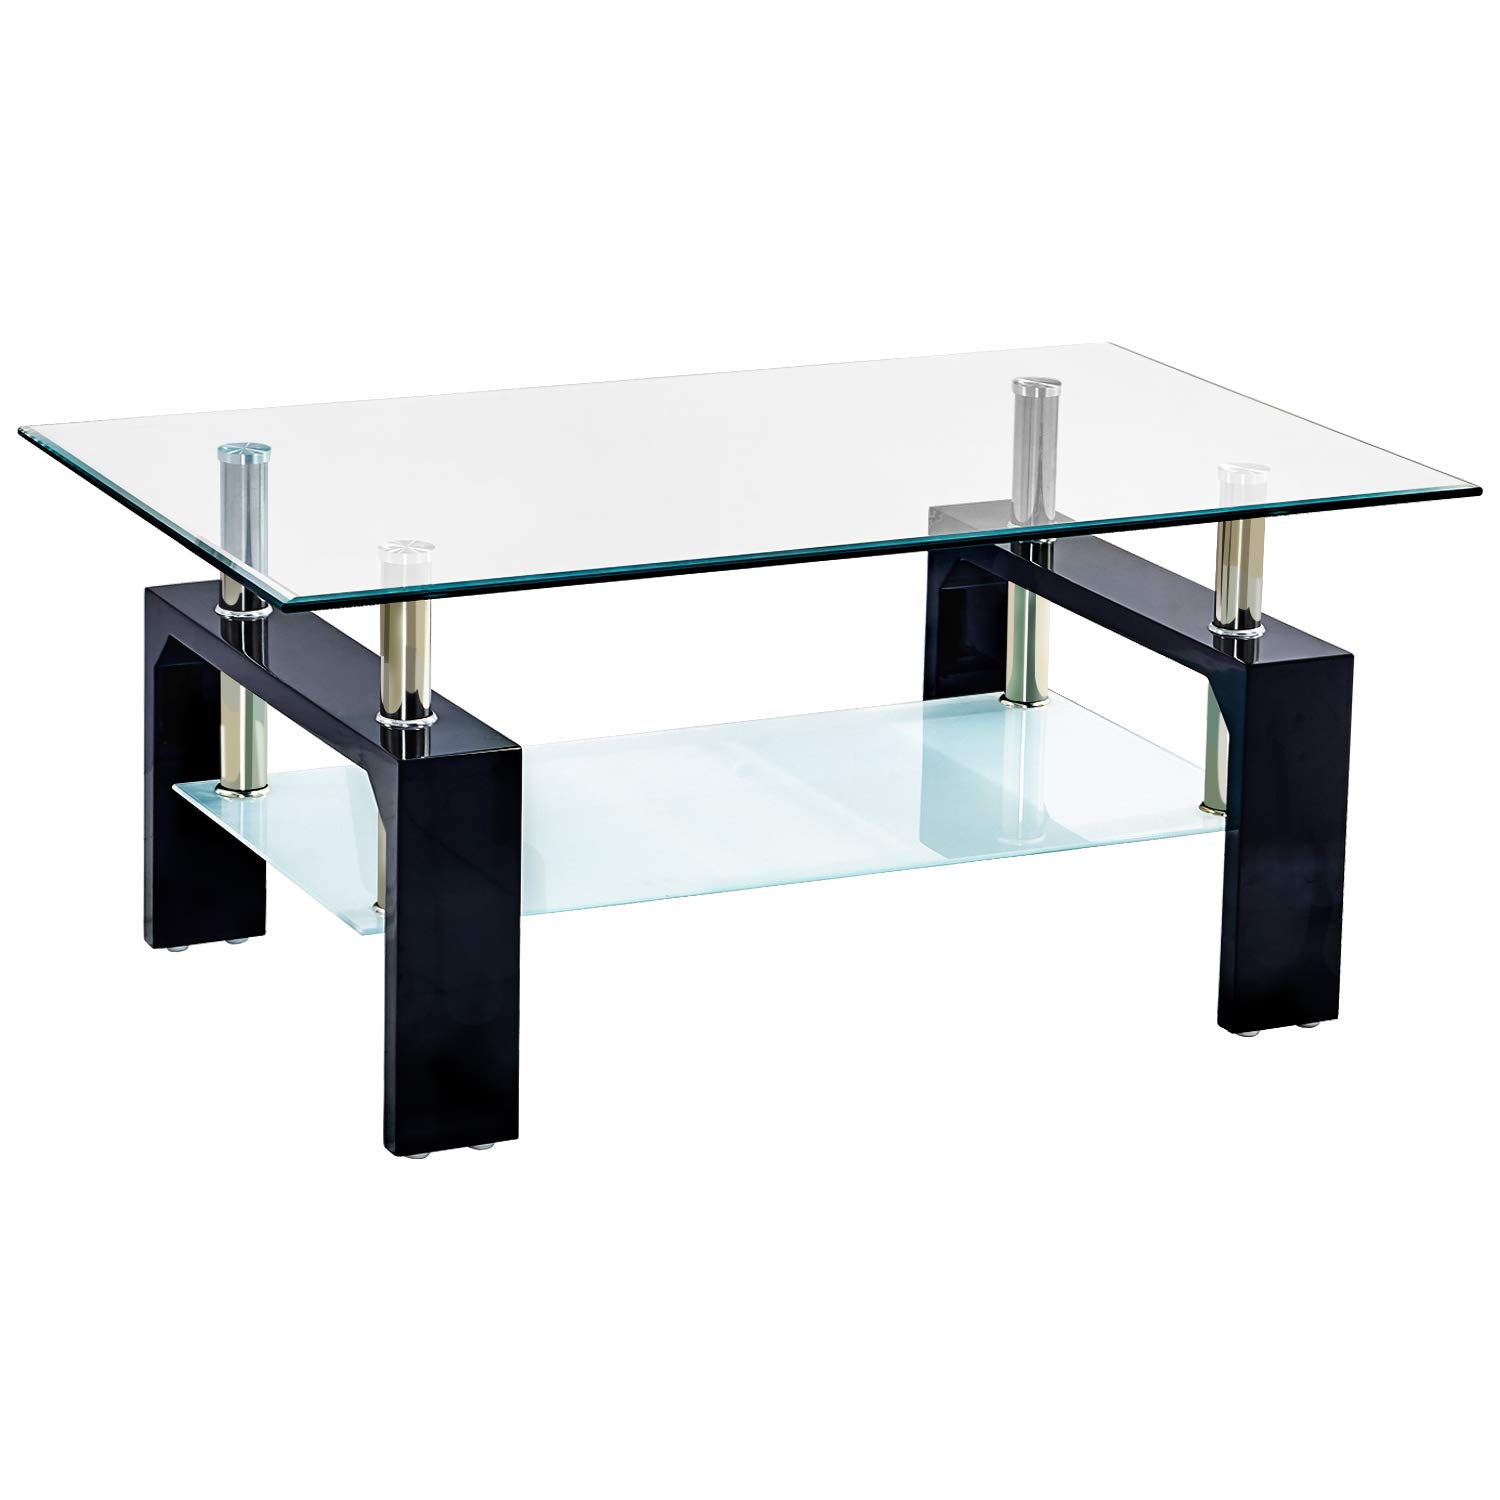 Trustiwood rectangular tempered glass coffee table tea tale wood and chrome end side table with 2 tier shelf suit for living room office modern home